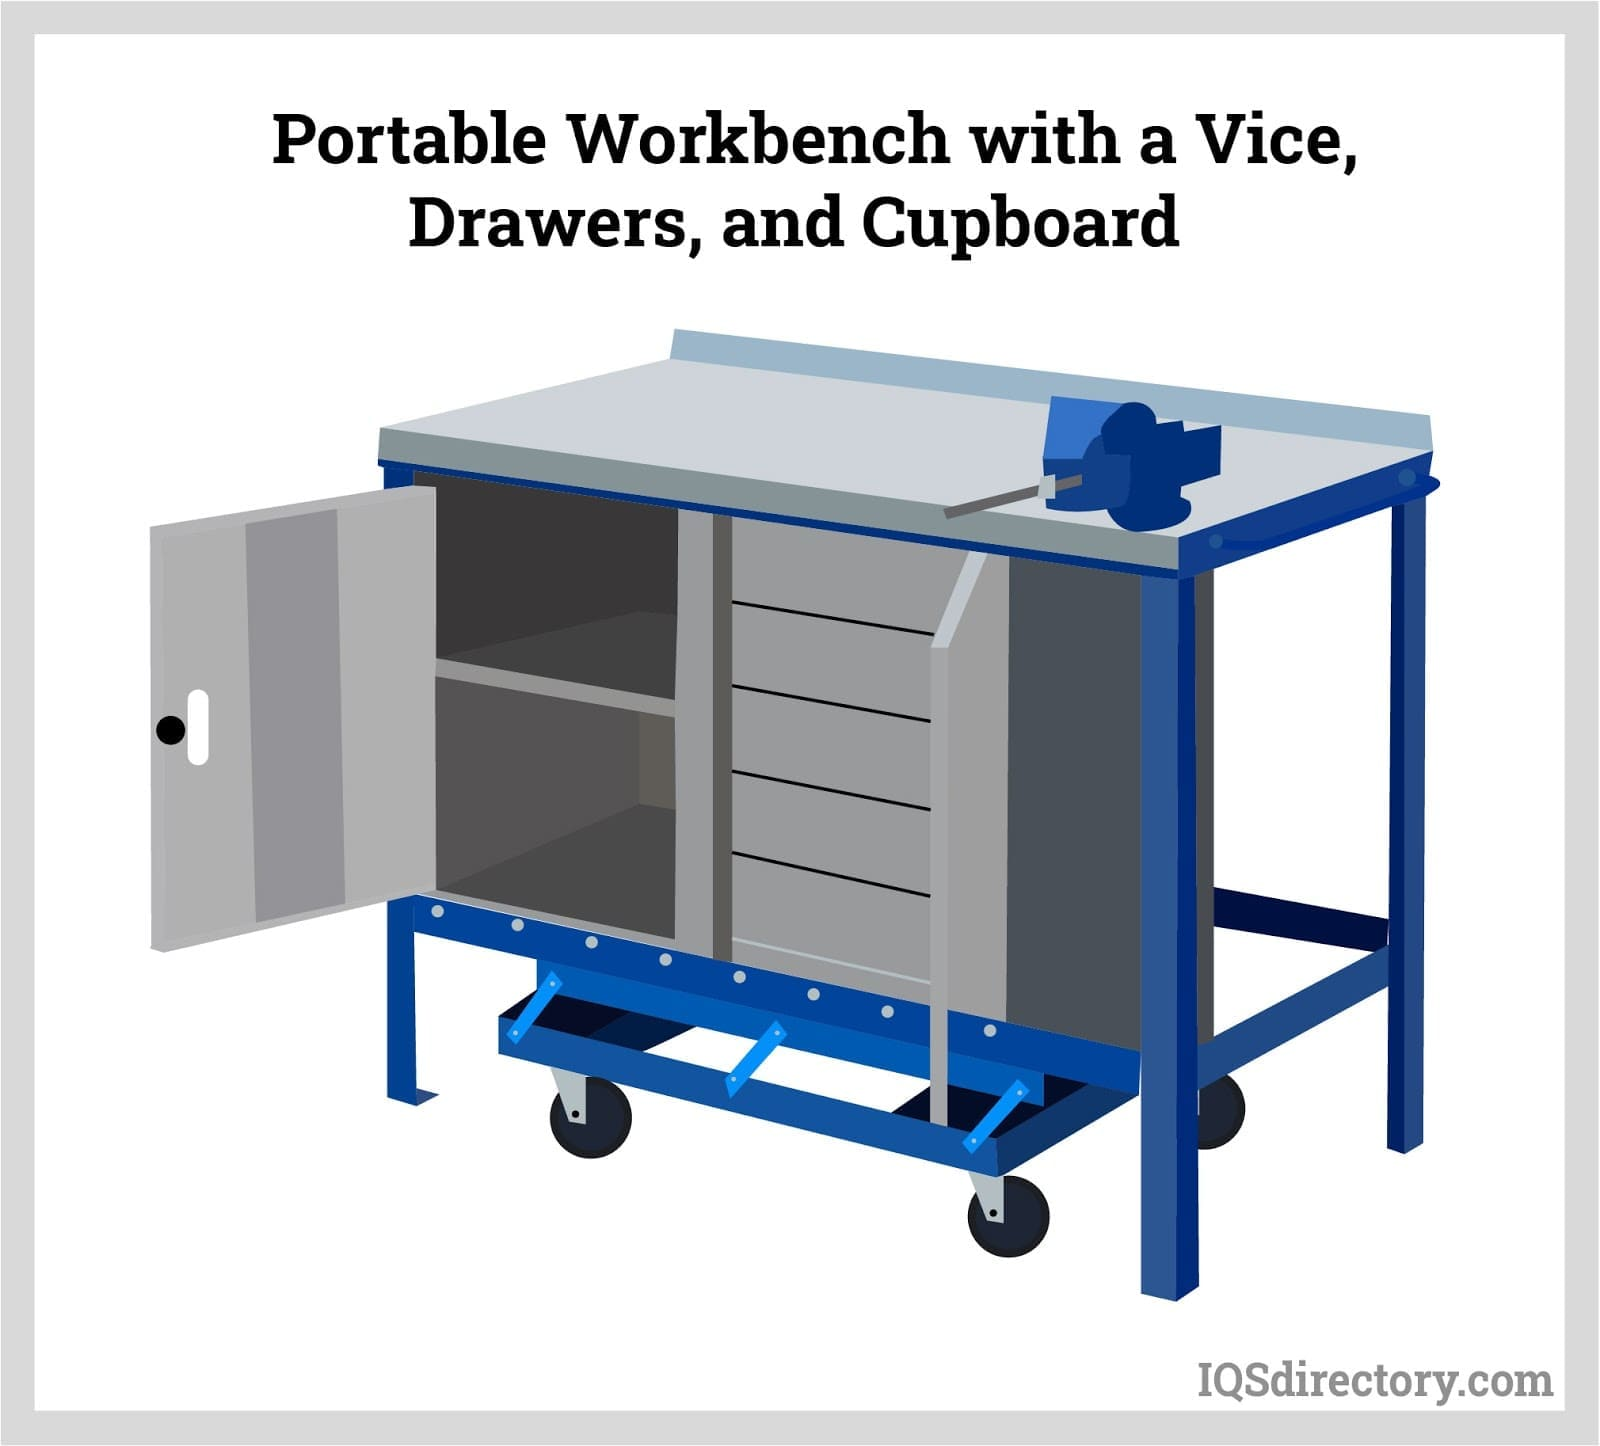 Portable Workbench with a Vice, Drawers, and Cupboard